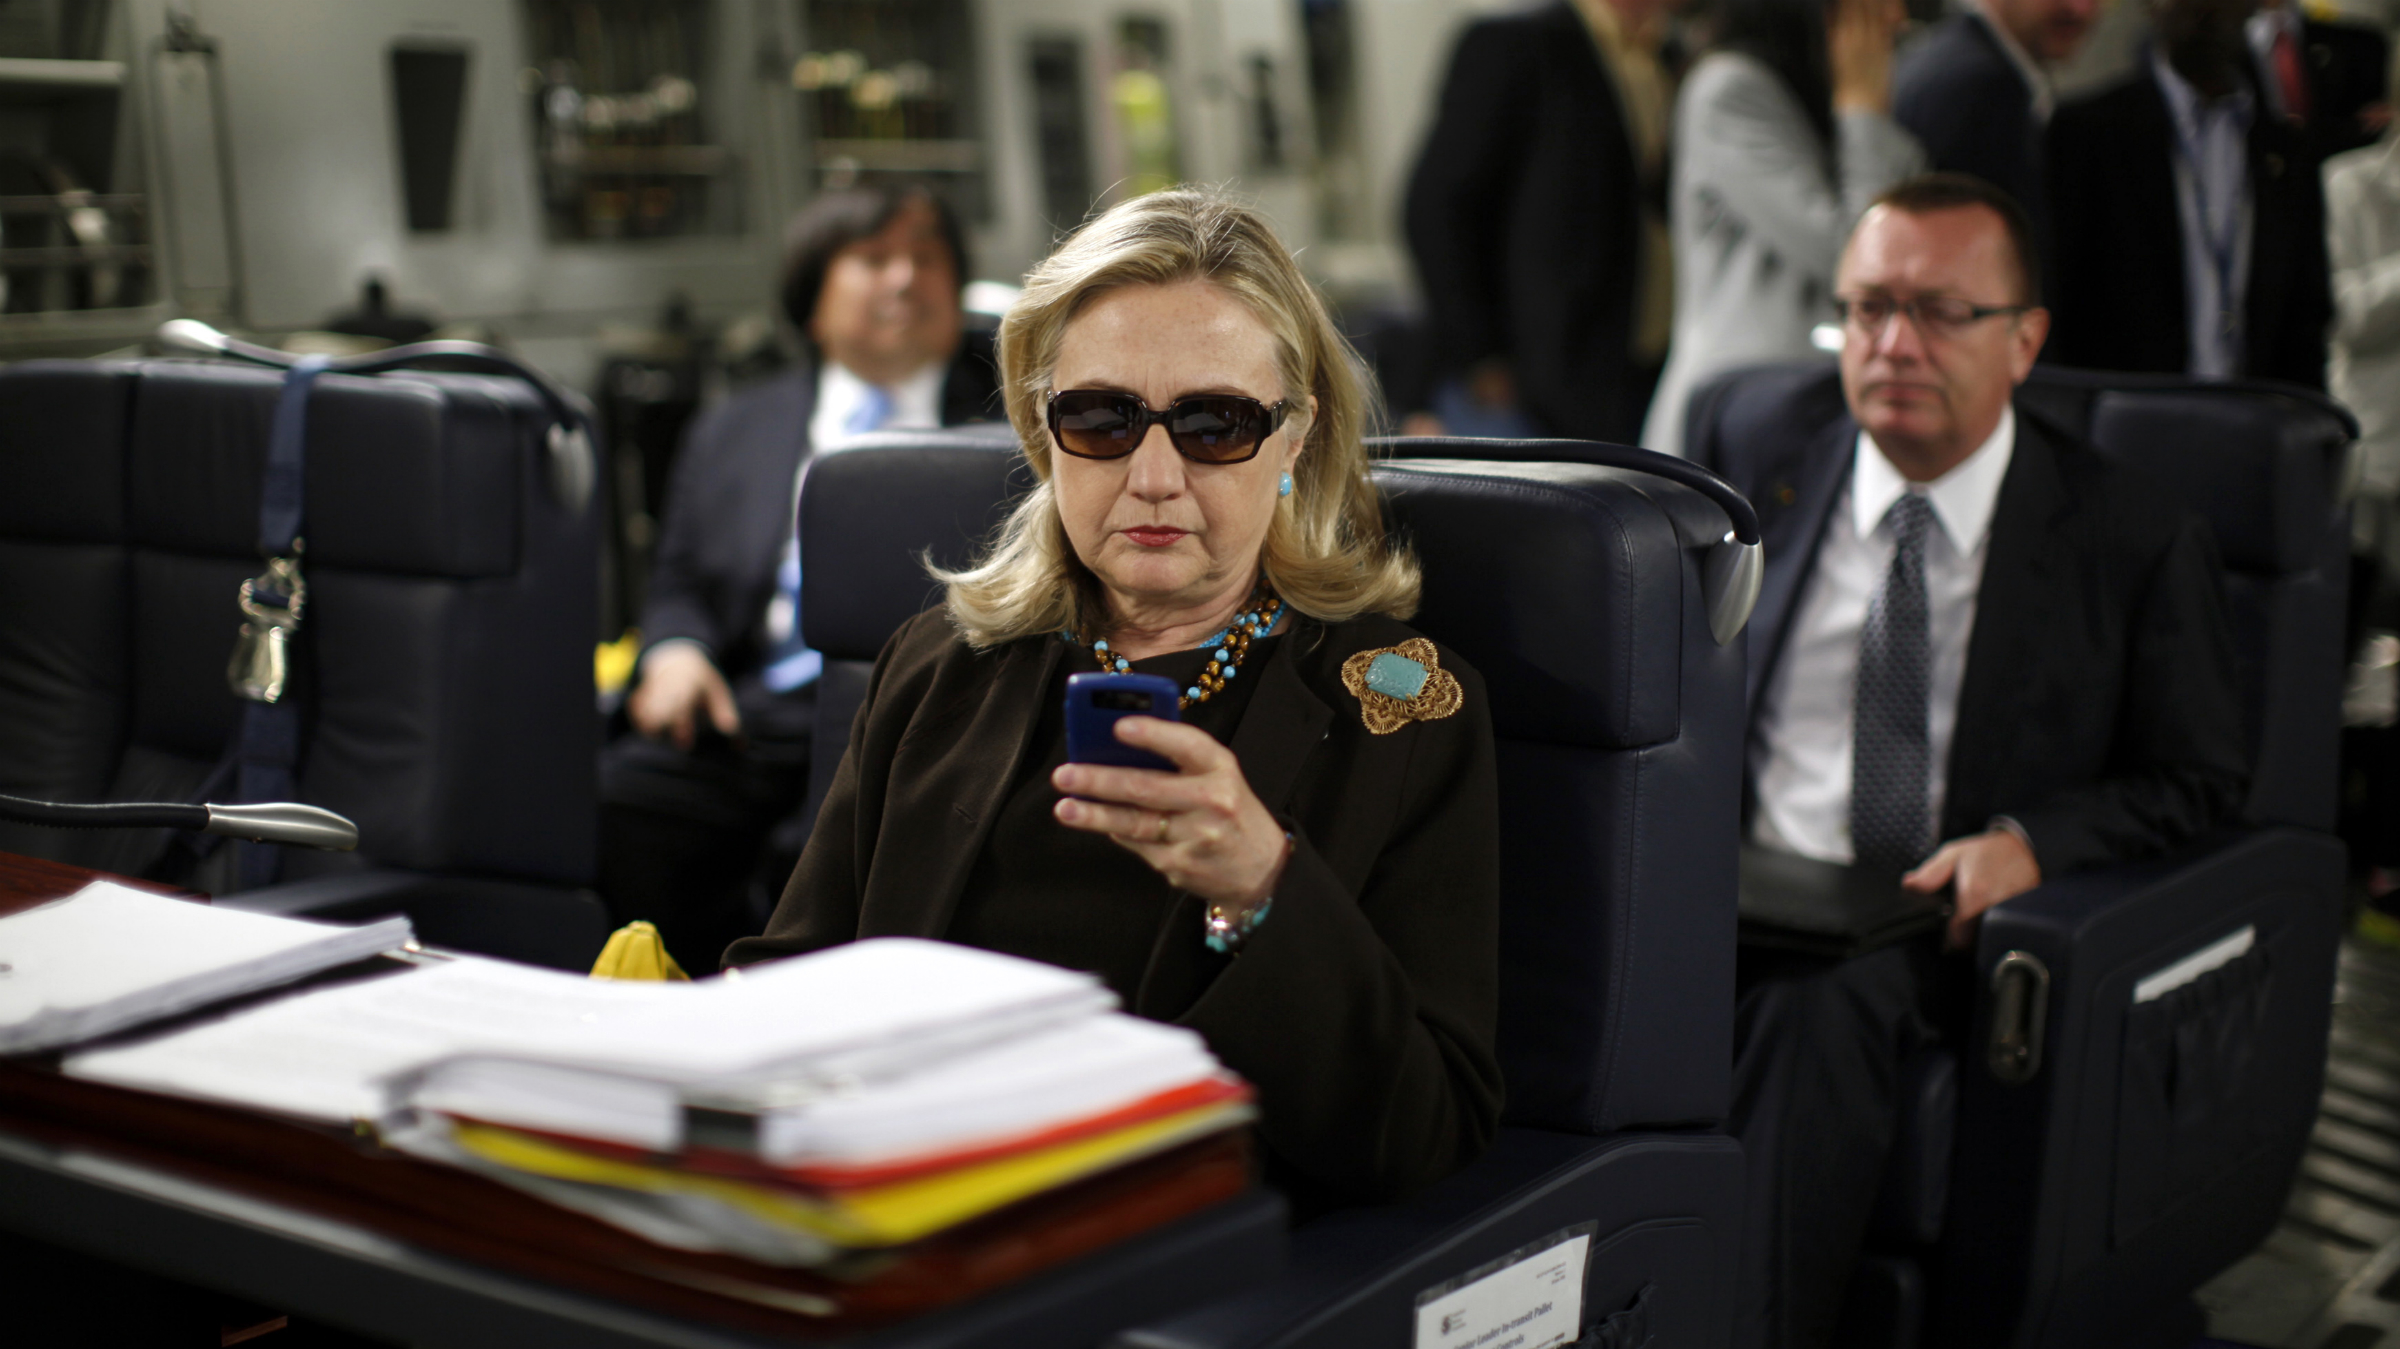 Hillary Clinton using her phone on a plane.